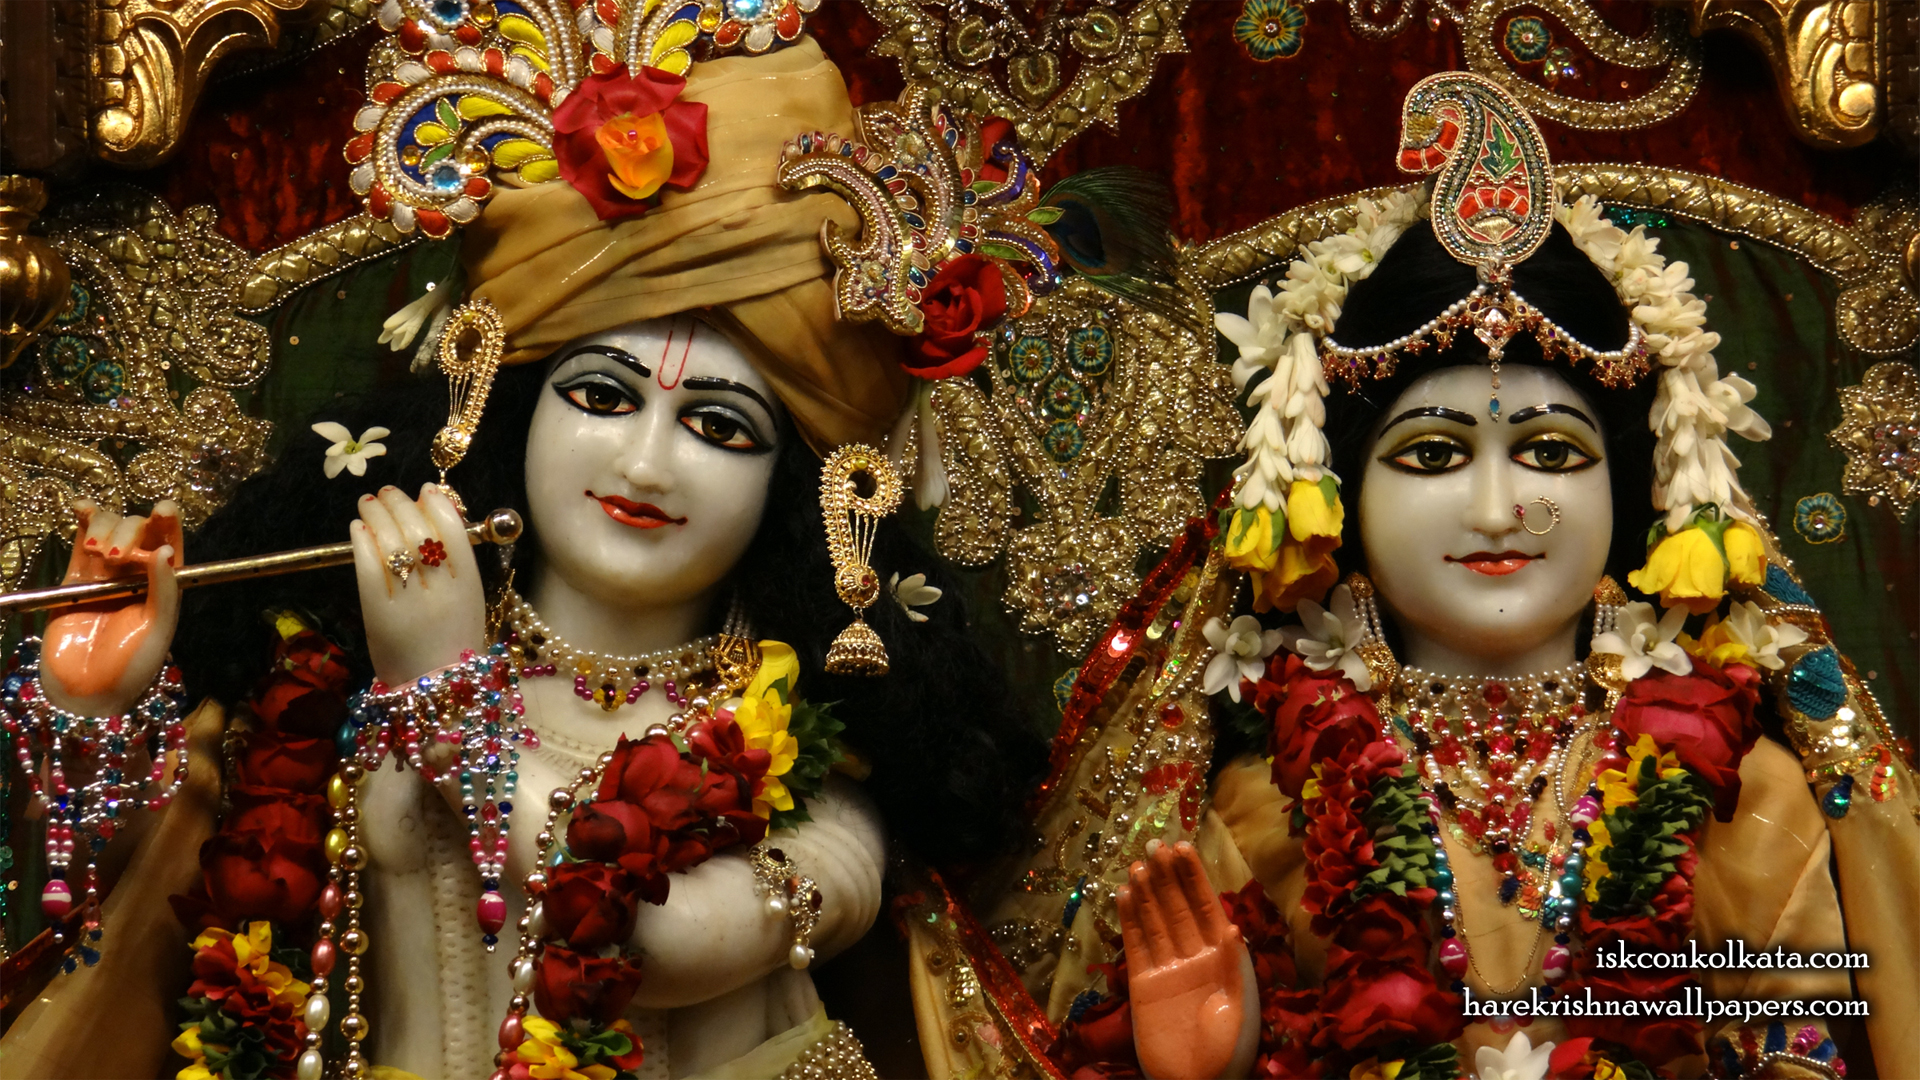 Sri Sri Radha Govinda Close up Wallpaper (009) Size 1920x1080 Download